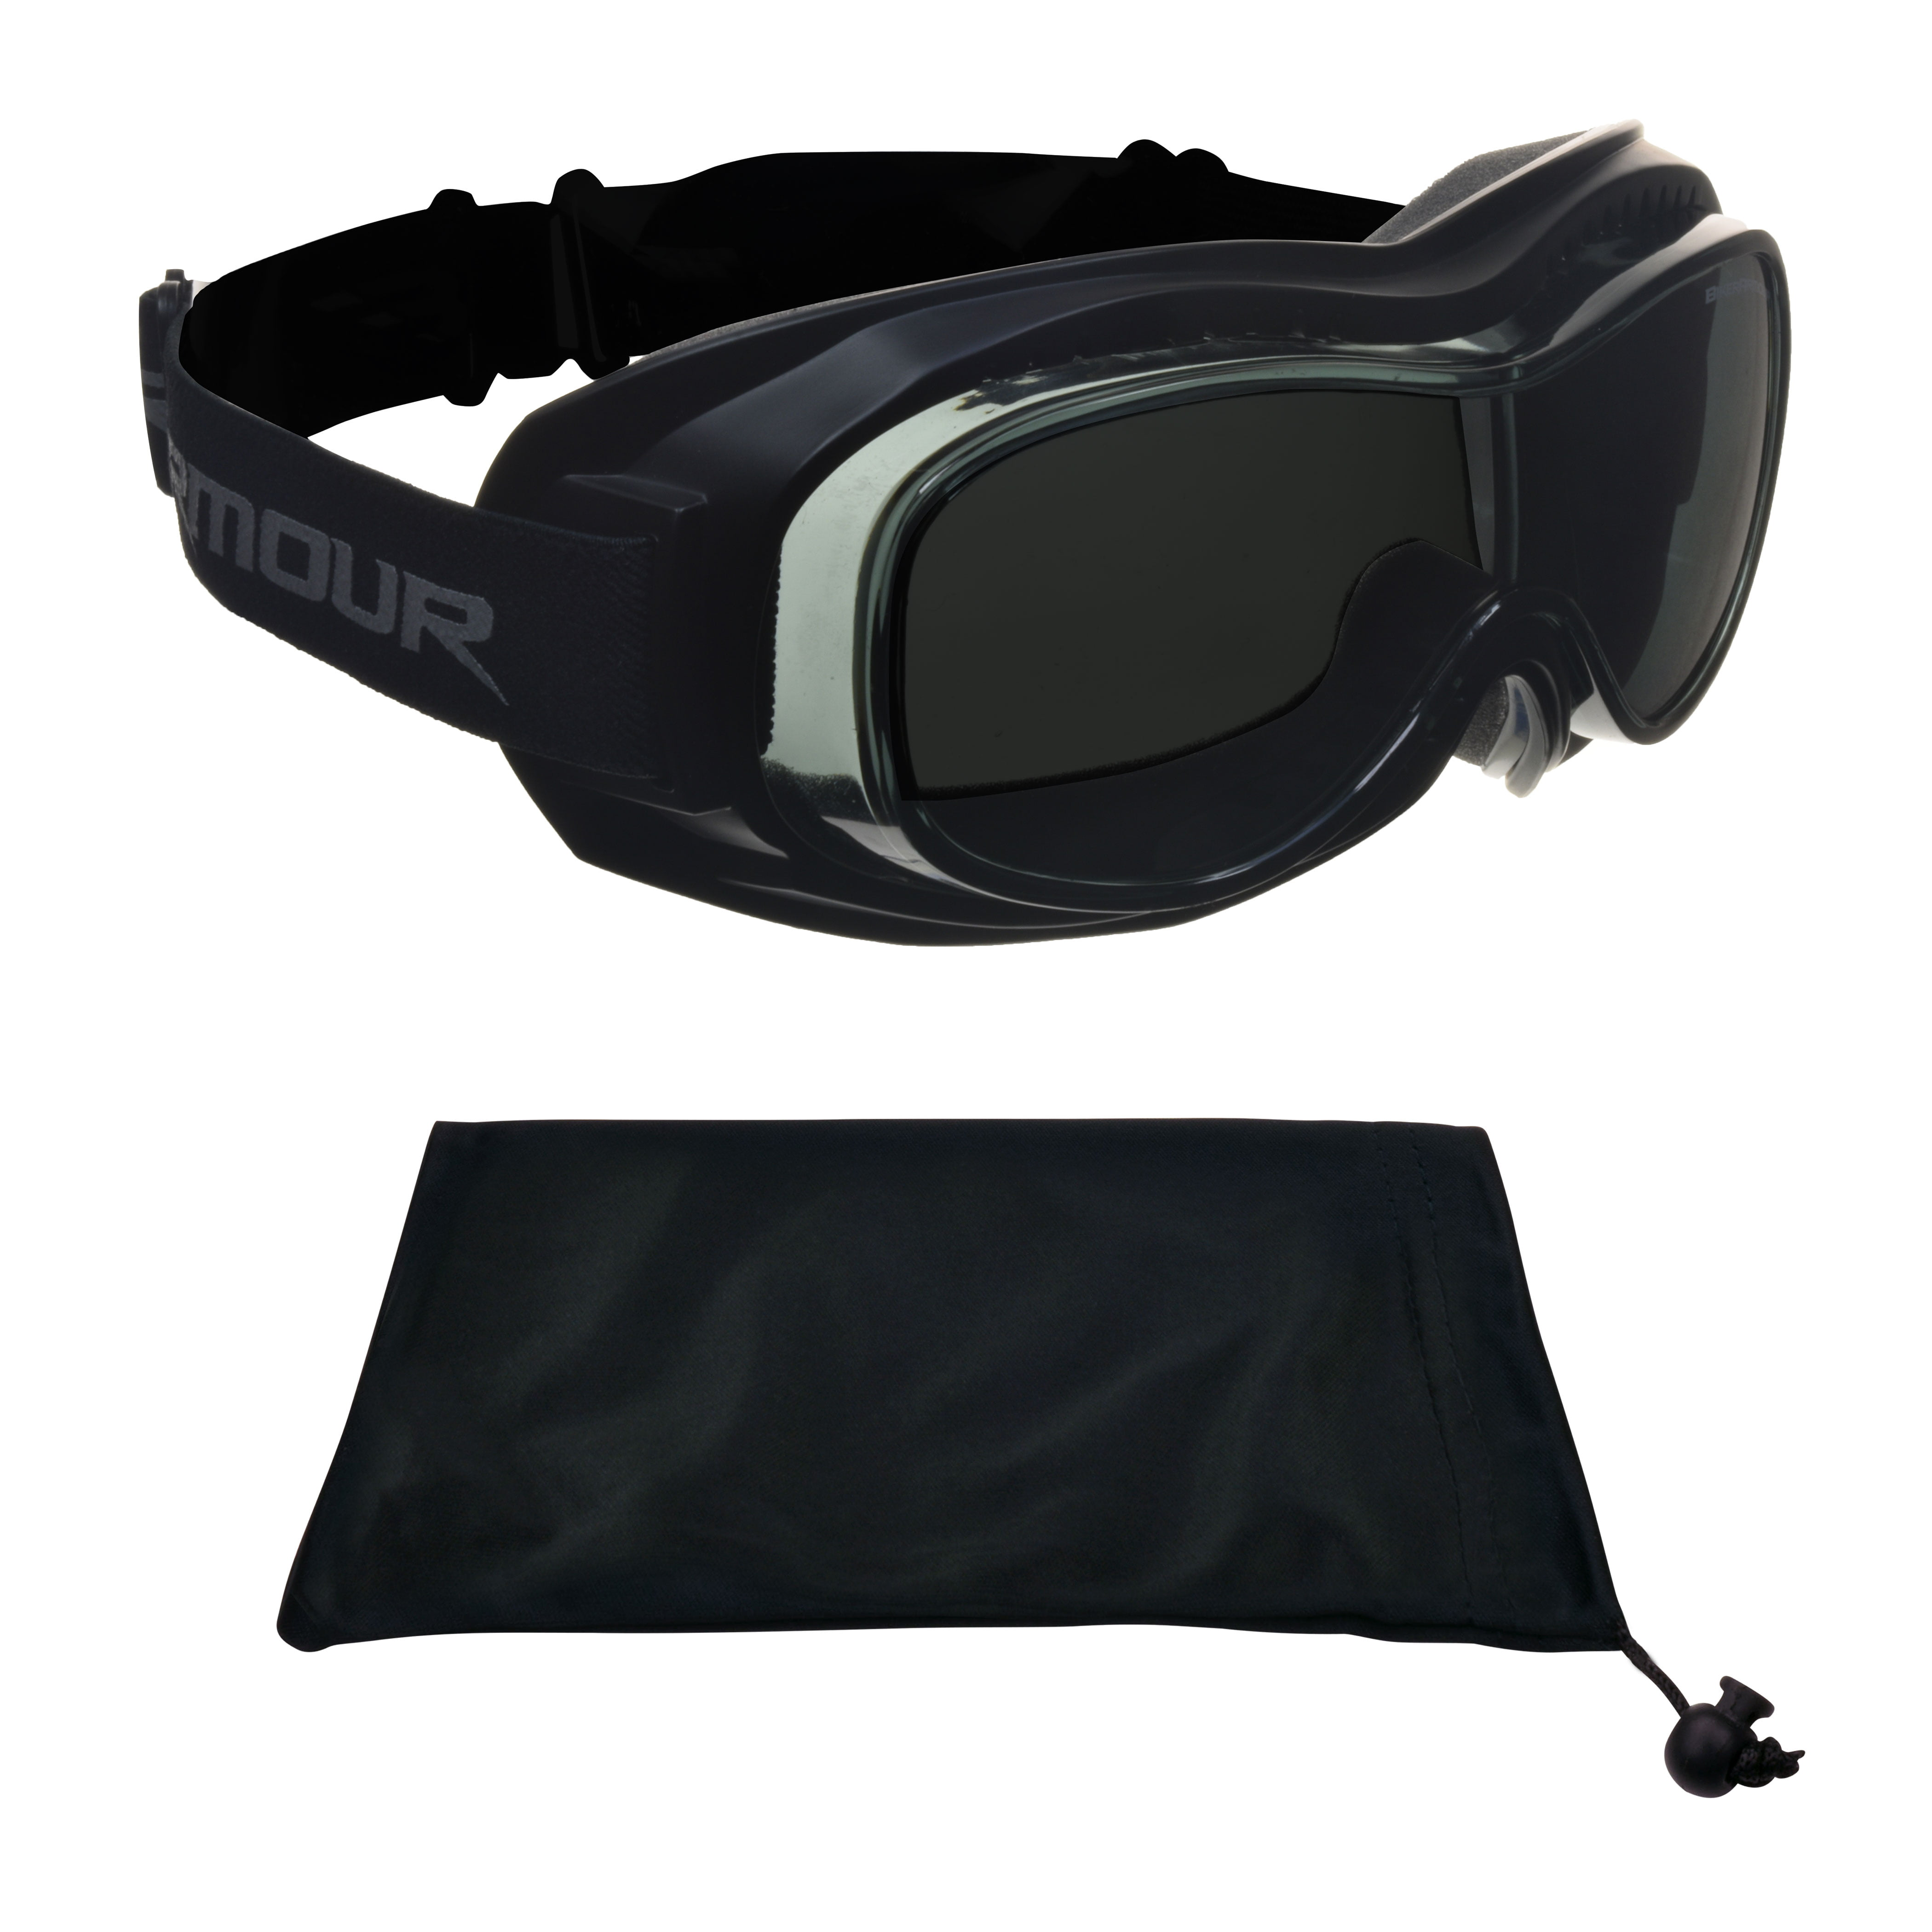 0674a008b13 Fit Over RX Glasses Goggles to Cover Prescription for Motorcycle Riding